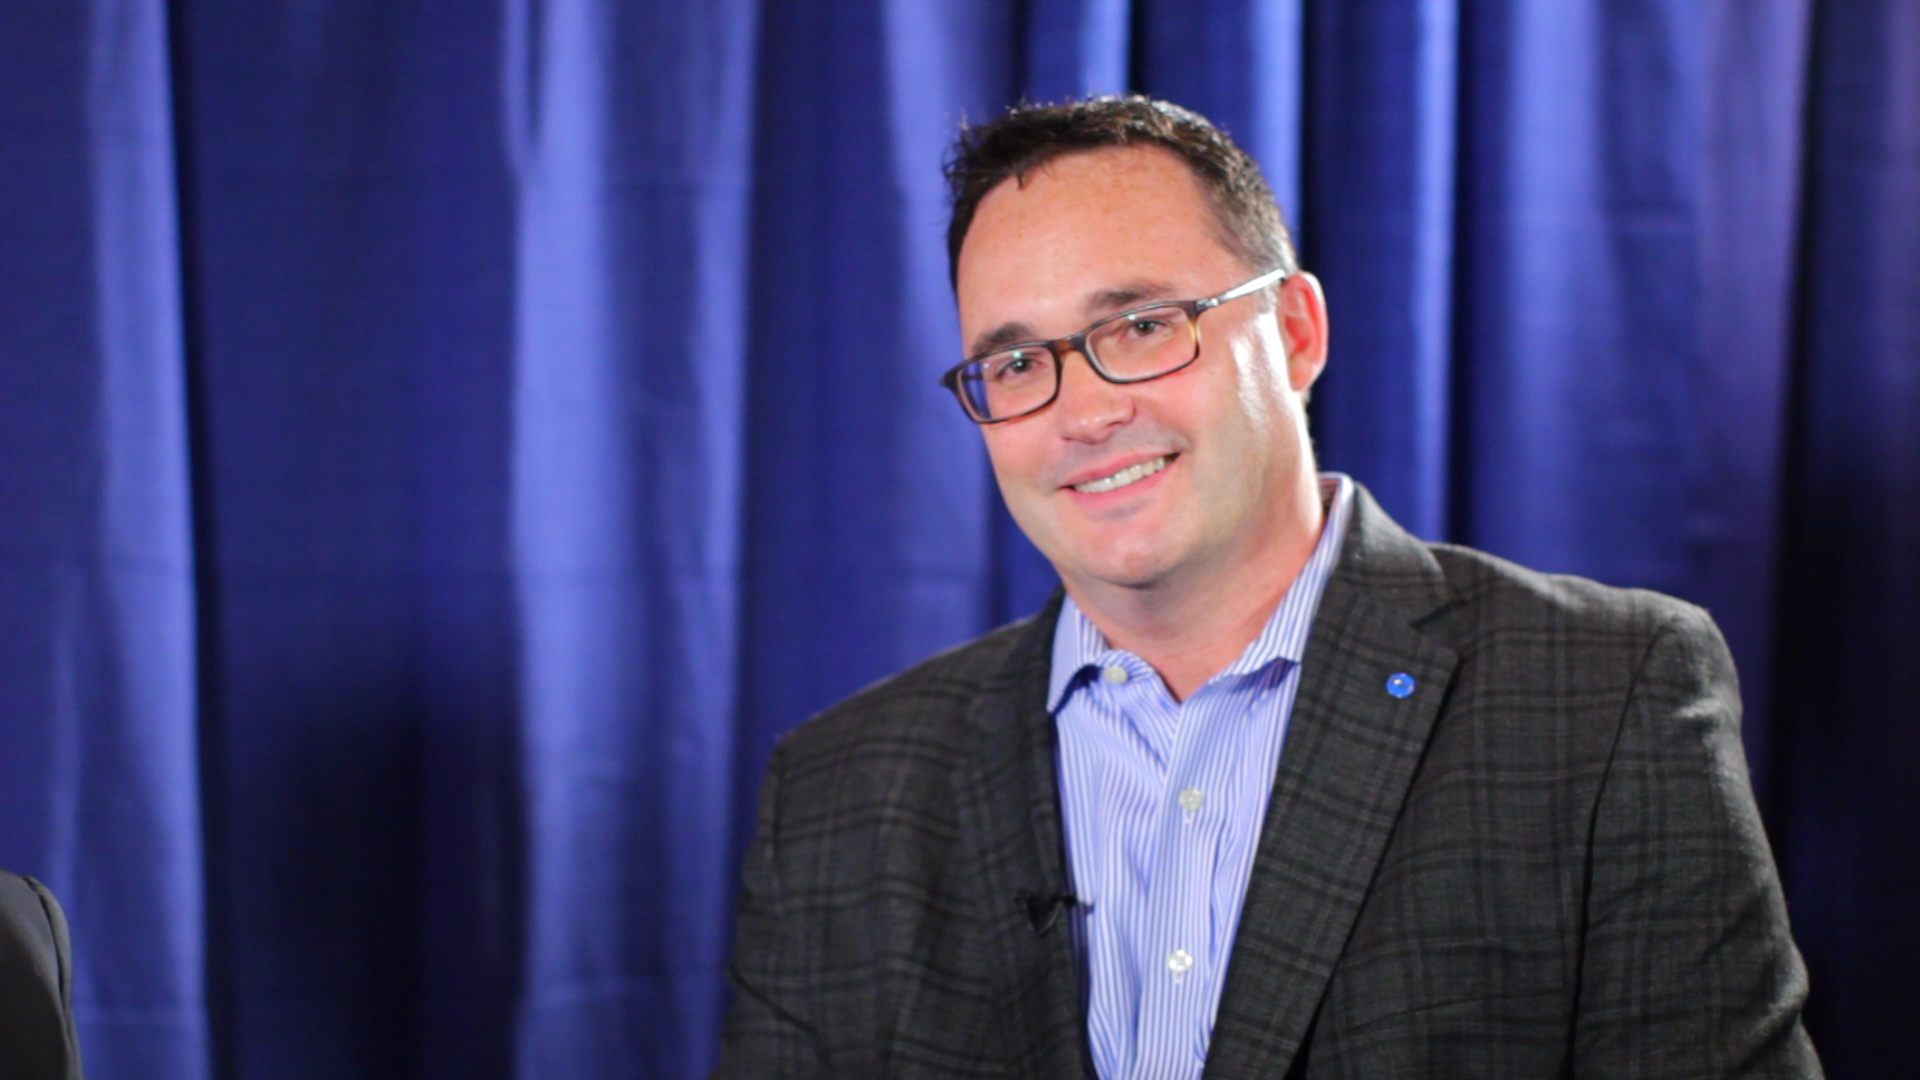 Video preview: Beyond the Box at Konica Minolta